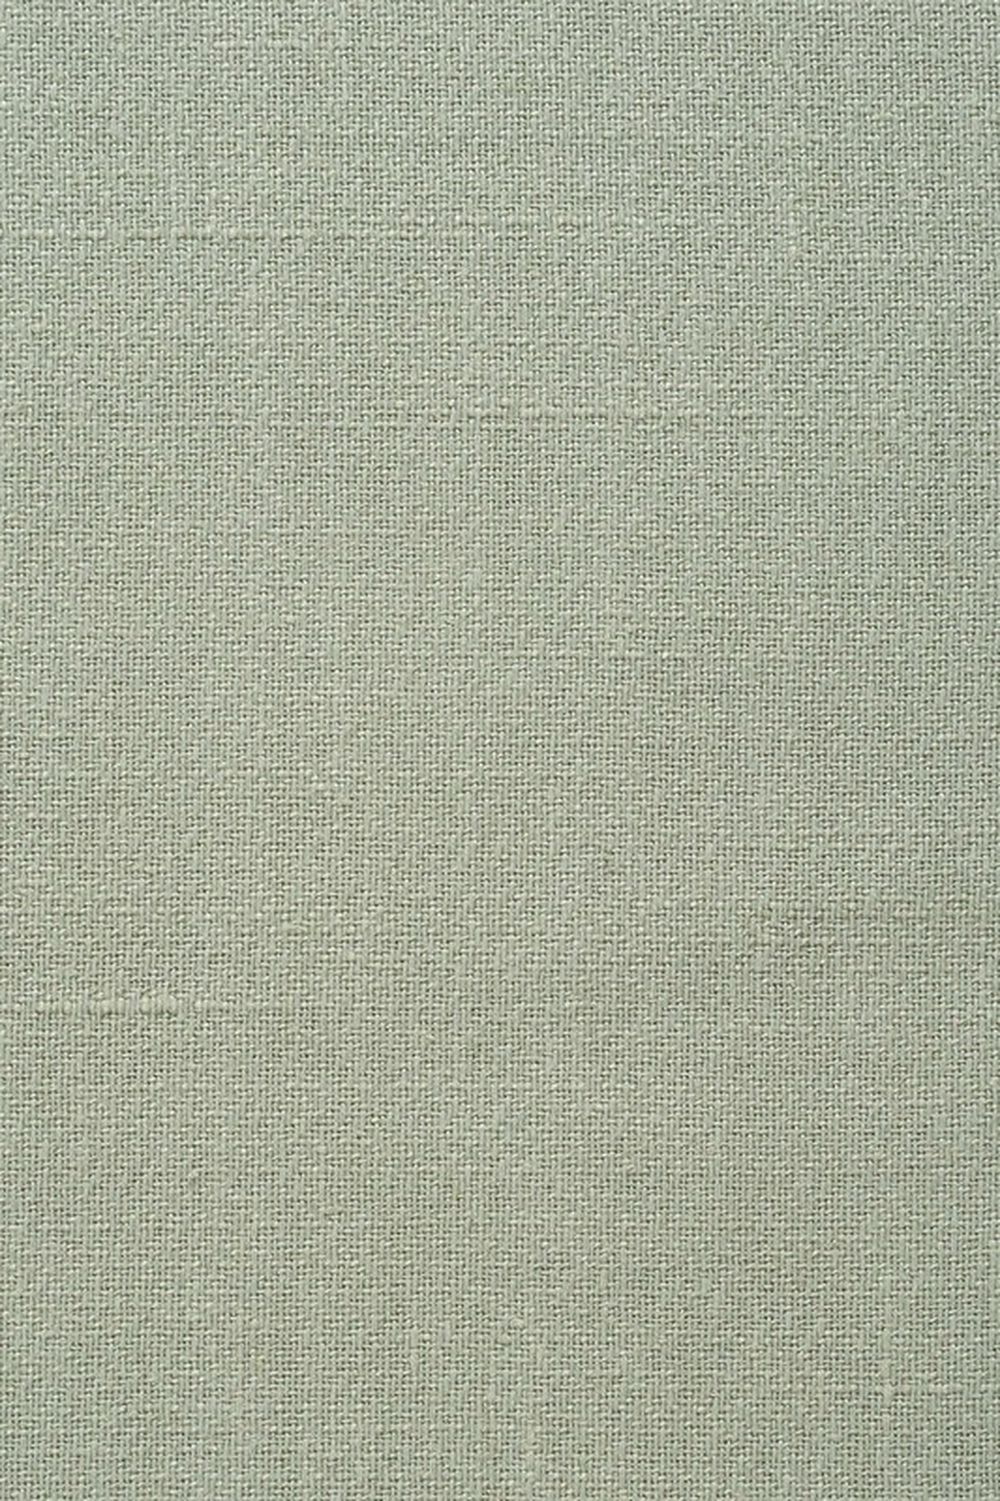 Photo of the fabric Simplicity* Mist swatch by James Dunlop. Use for Curtains, Accessory. Style of Plain, Texture